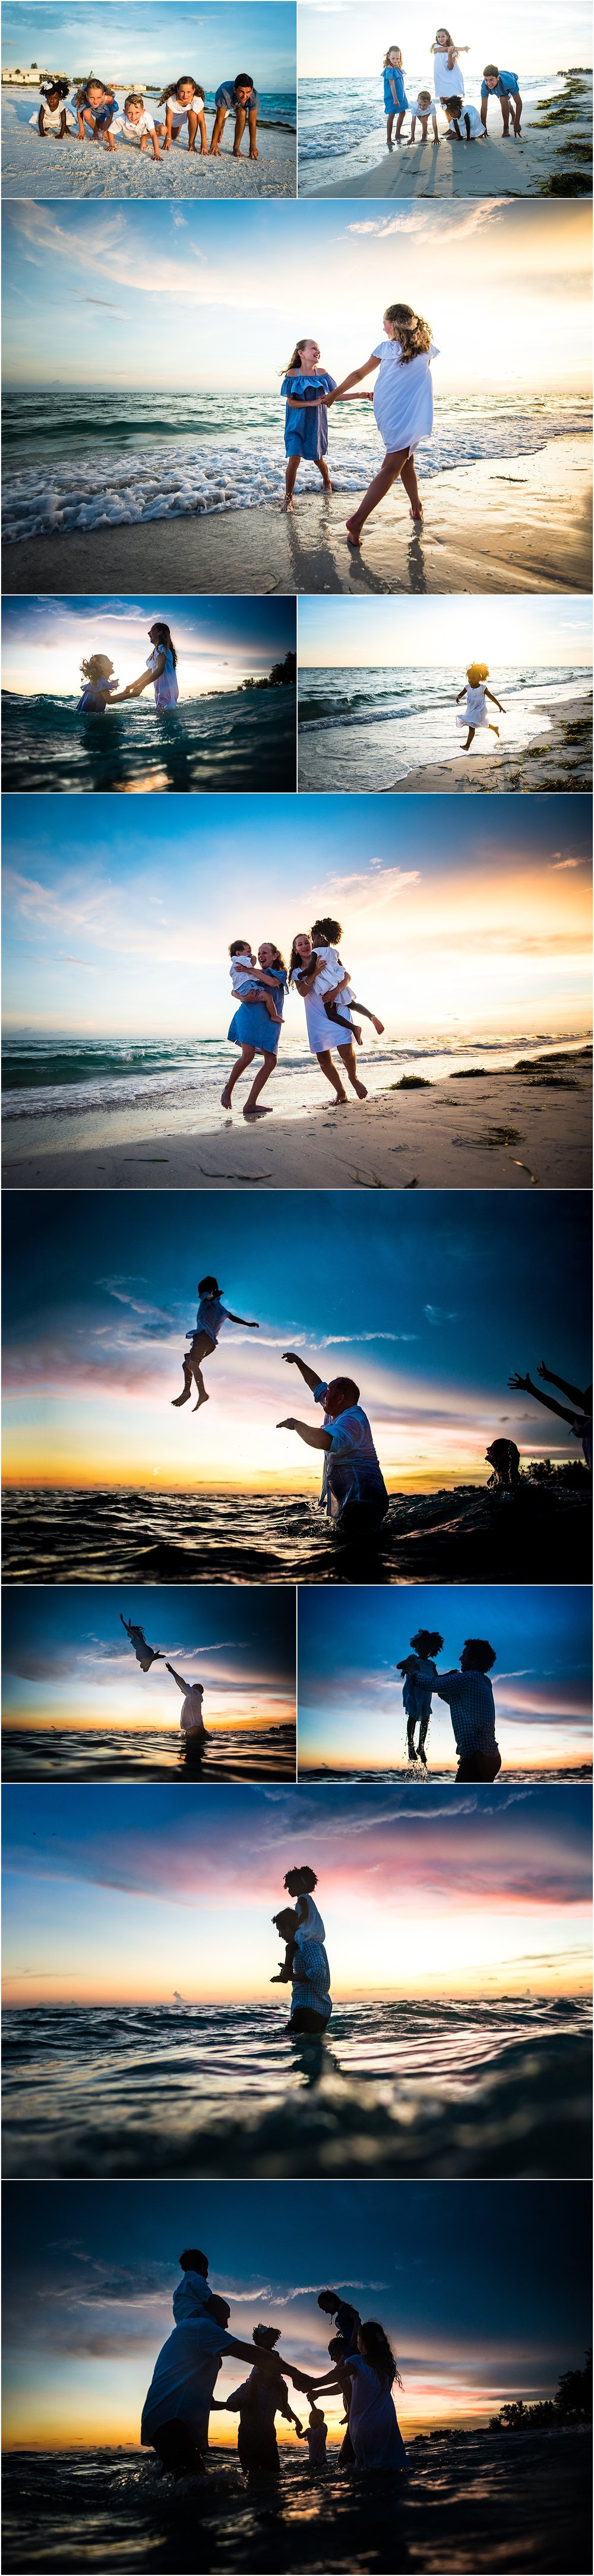 Nothing like a little ring around the rosie to end our gorgeous beach vacation photo shoot!!!